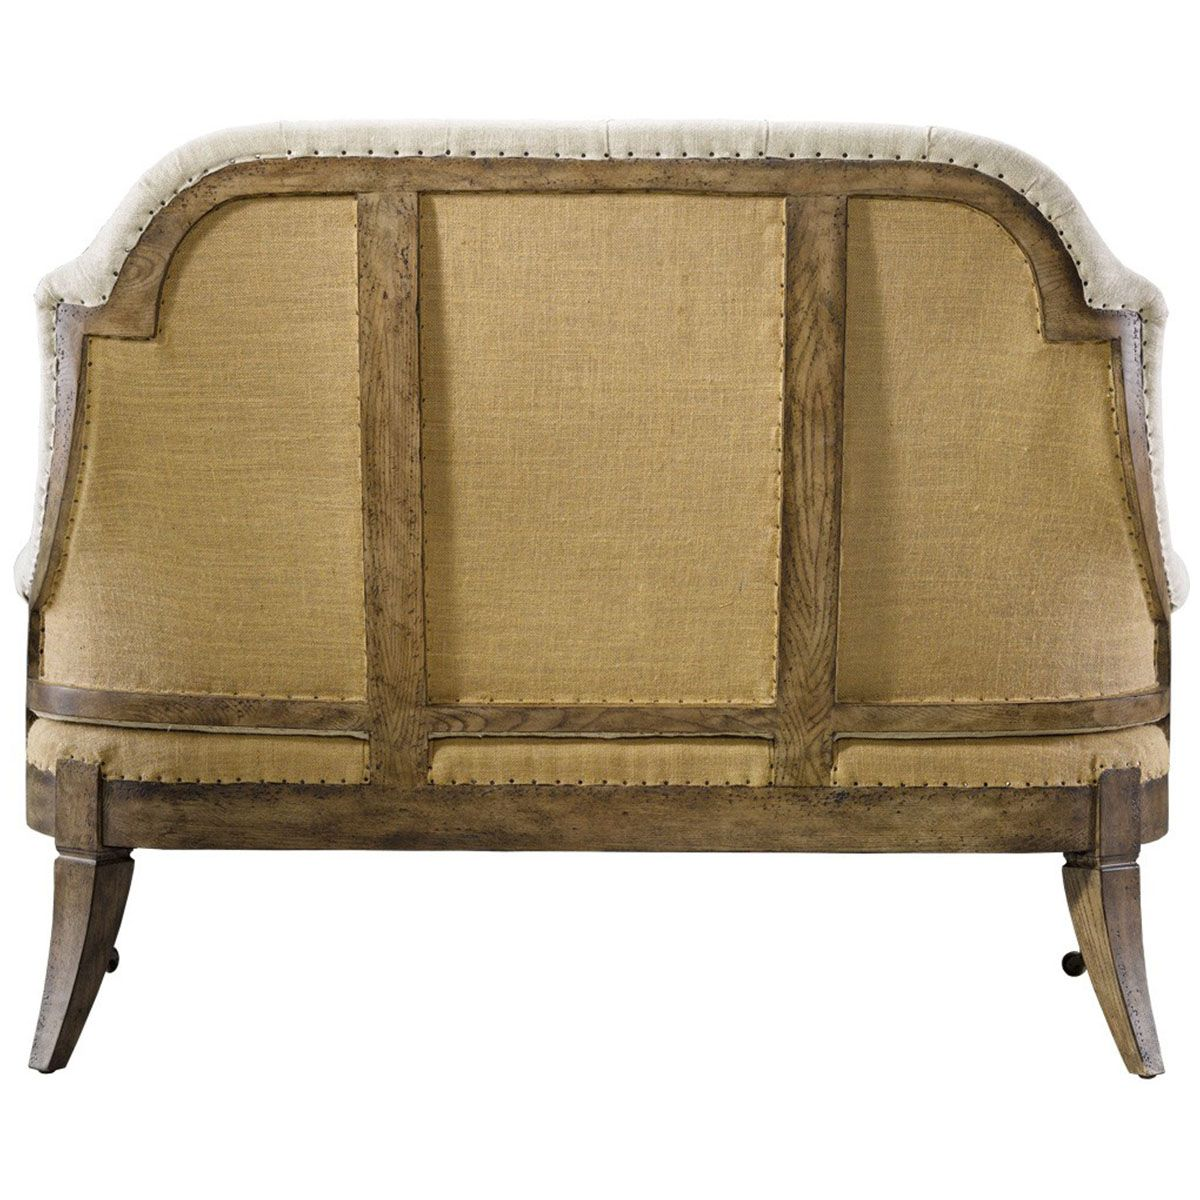 Curations Limited Deconstructed Belfort Back Sofa 7842.1108 ...